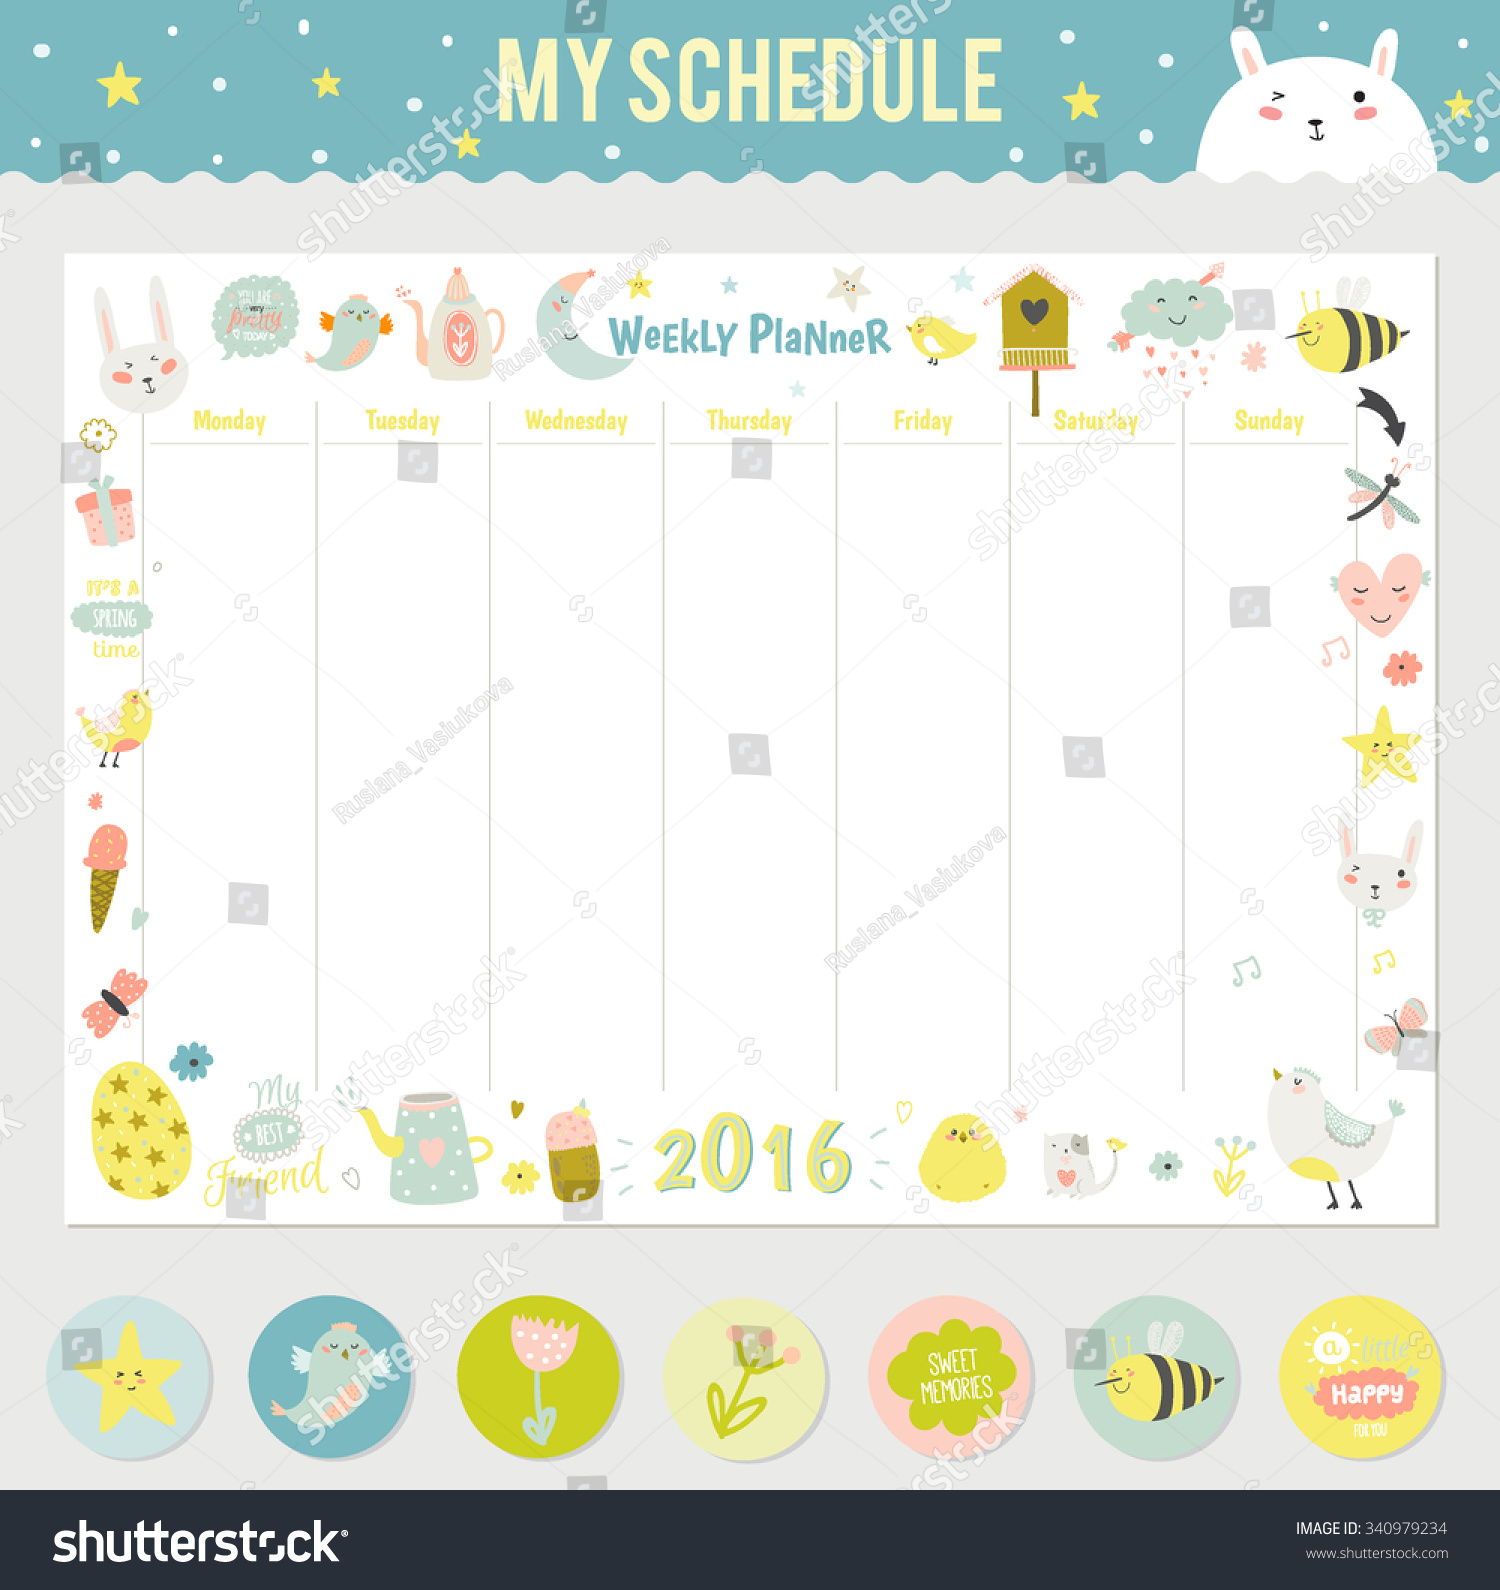 Cute Calendar Weekly Planner Template for 2016. Beautiful Diary with ...